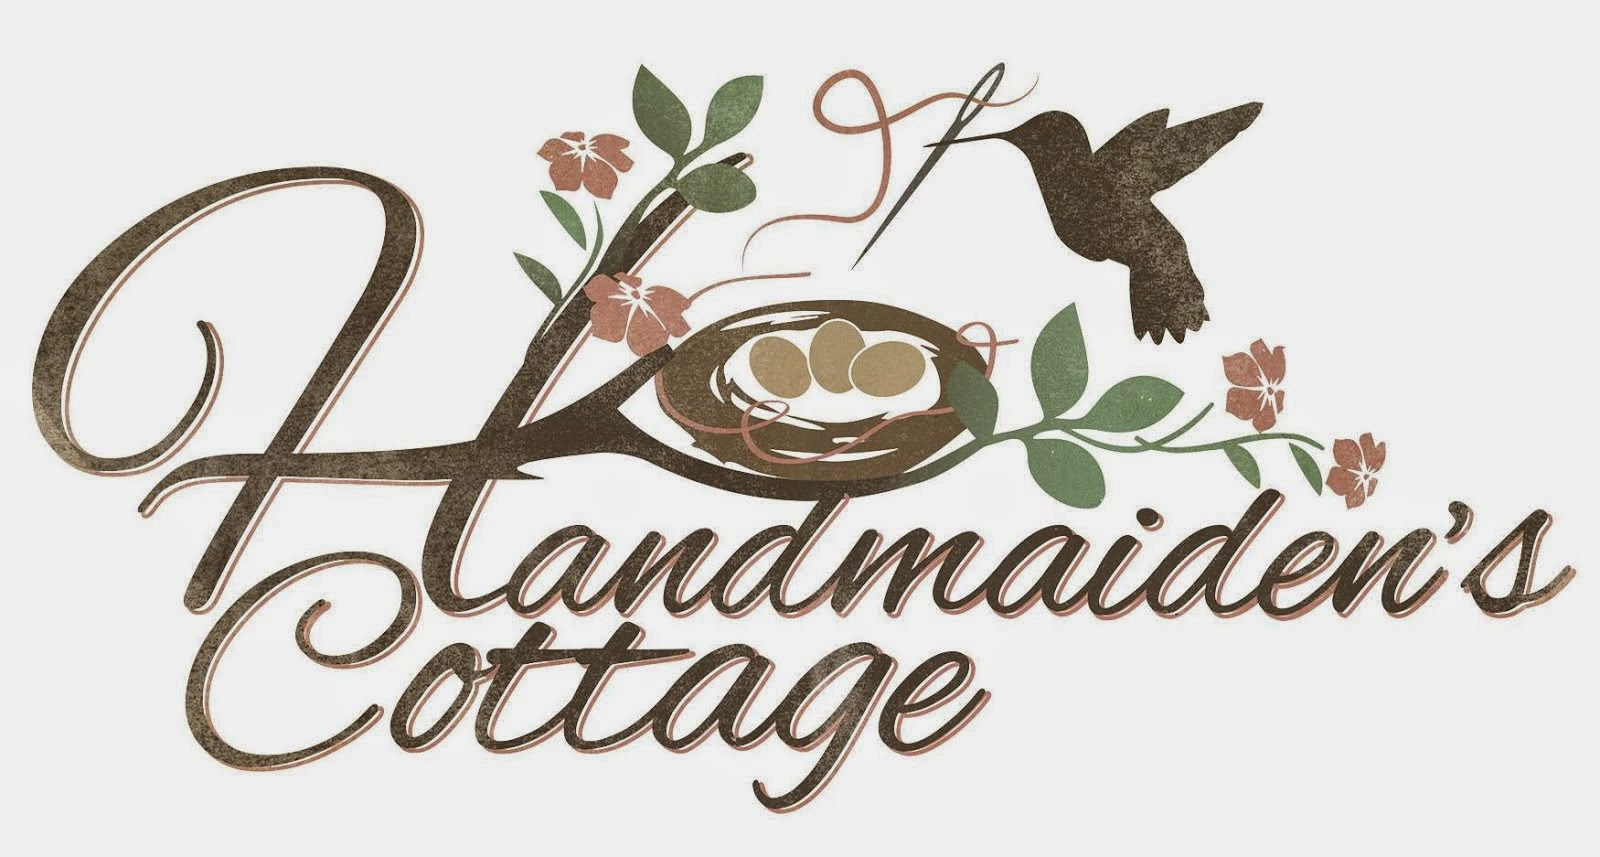 Handmaiden's Cottage Patterns